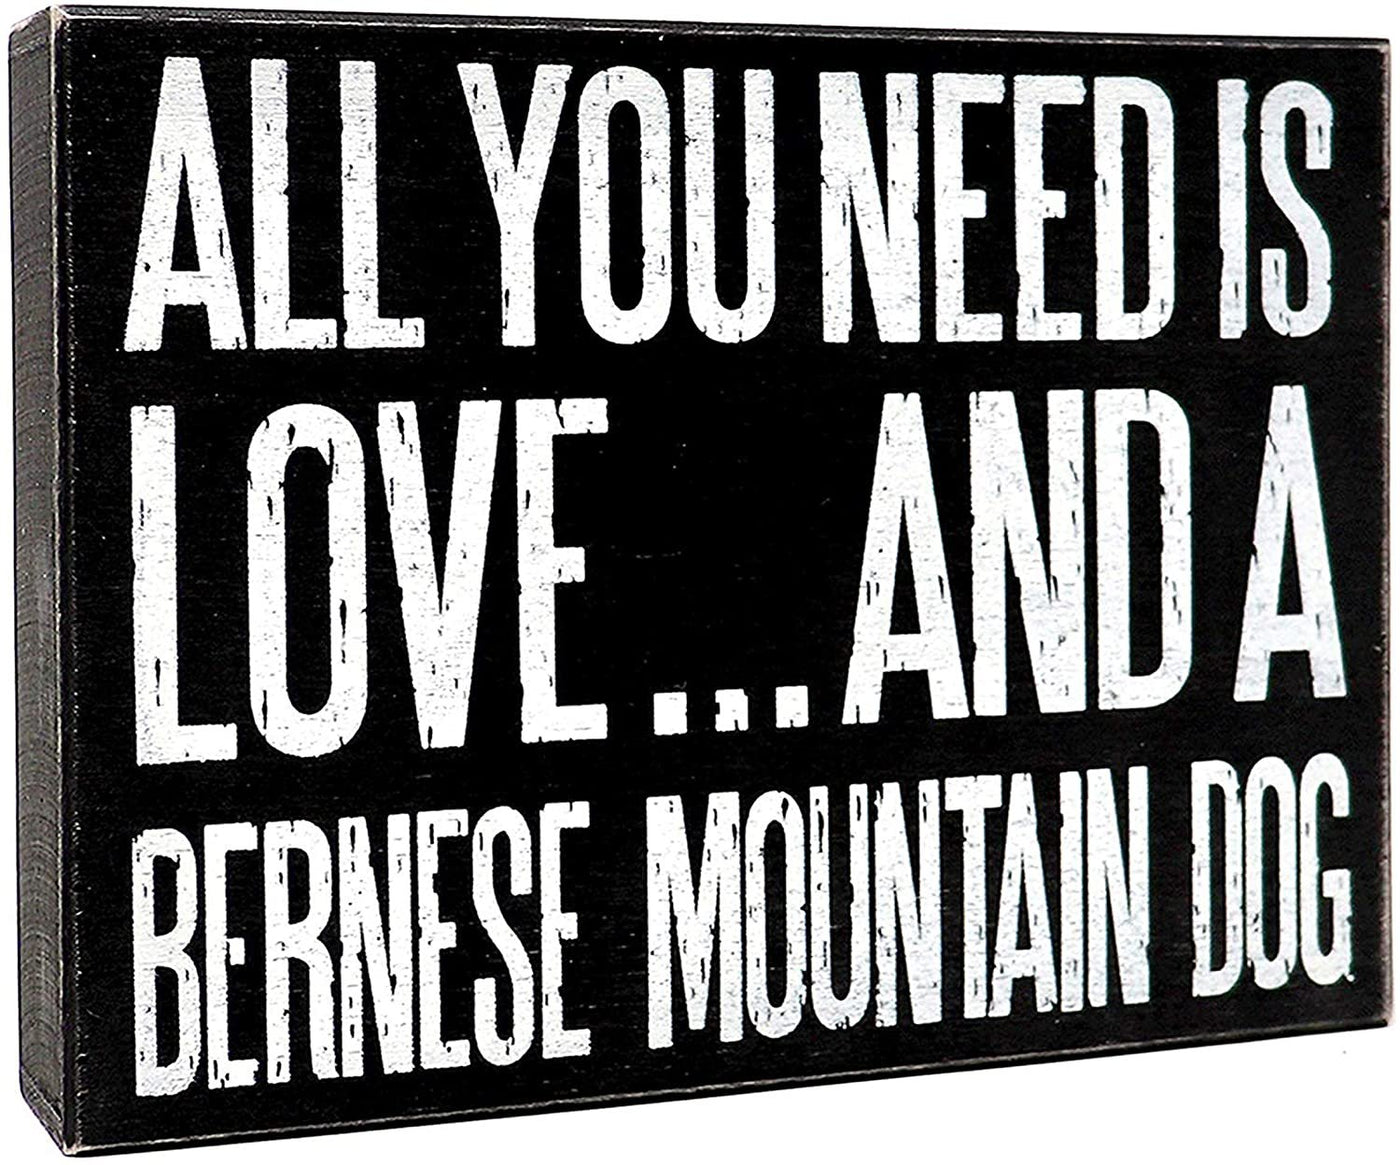 JennyGems Bernese Mountain Dog Sign, All You Need Is Love And A Bernese Mountain Dog, Bernese Mountain Dog Gifts, Bernese Mountain Dog Moms and Owners, Bernie Dog